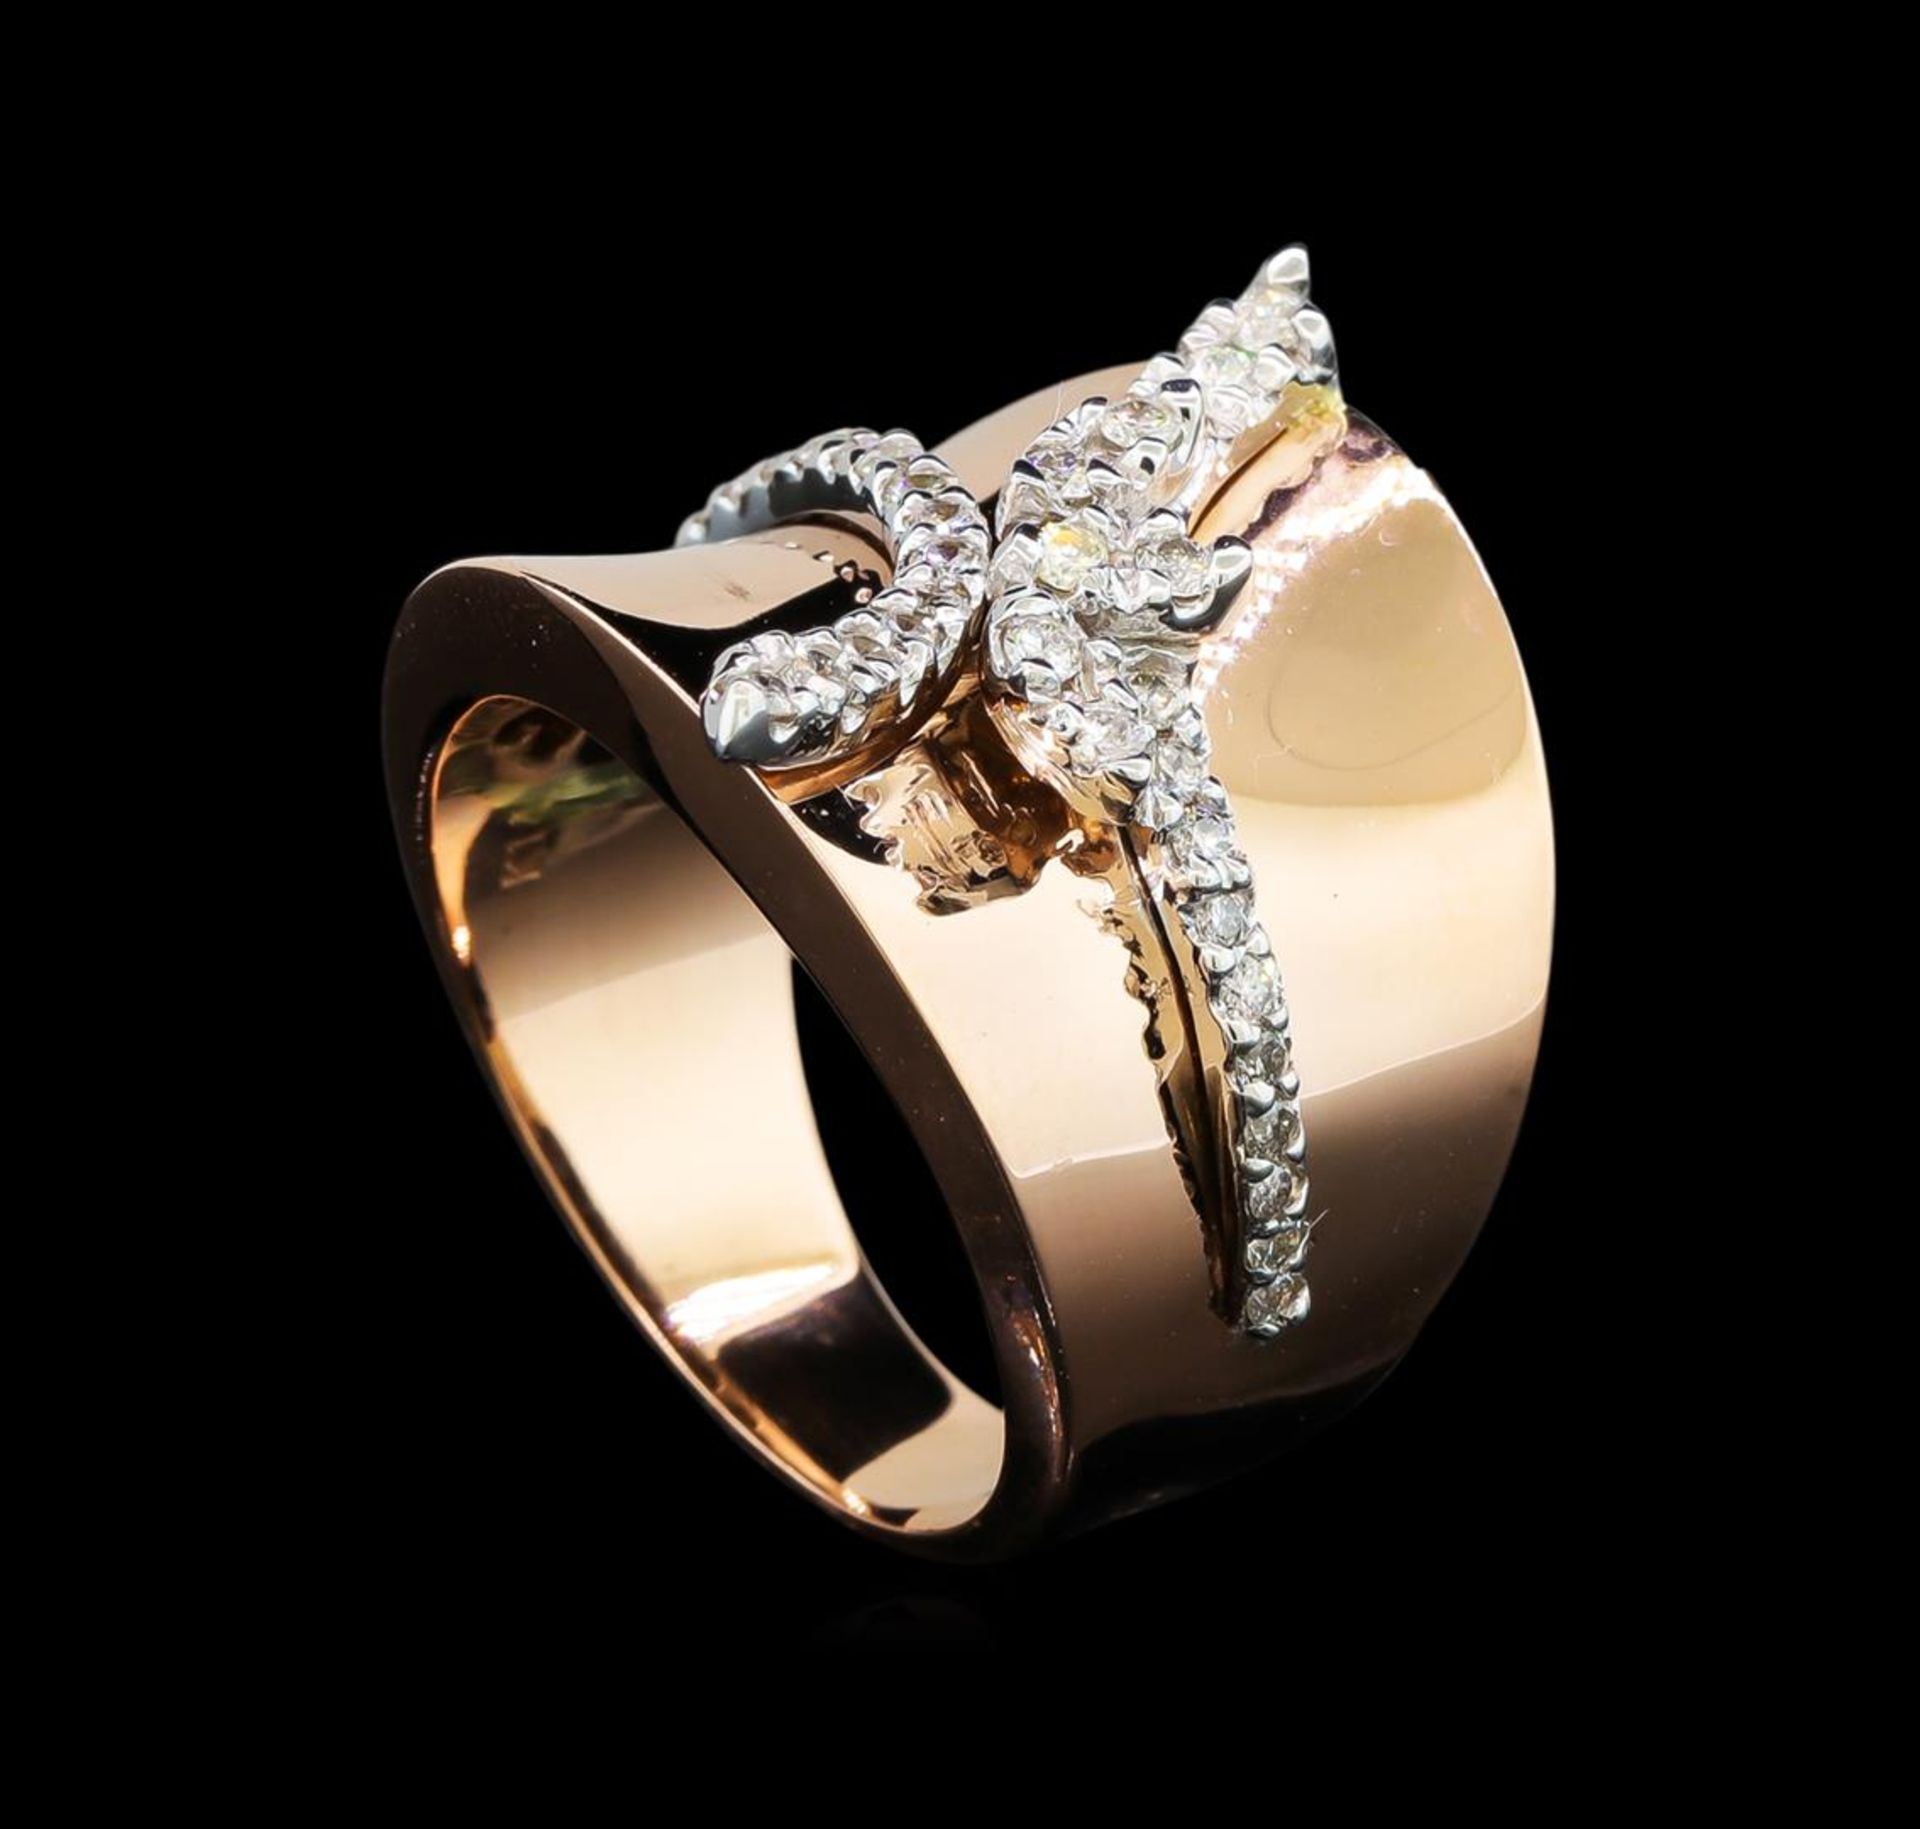 0.45ctw Diamond Ring - 14KT Two Tone Gold - Image 4 of 4